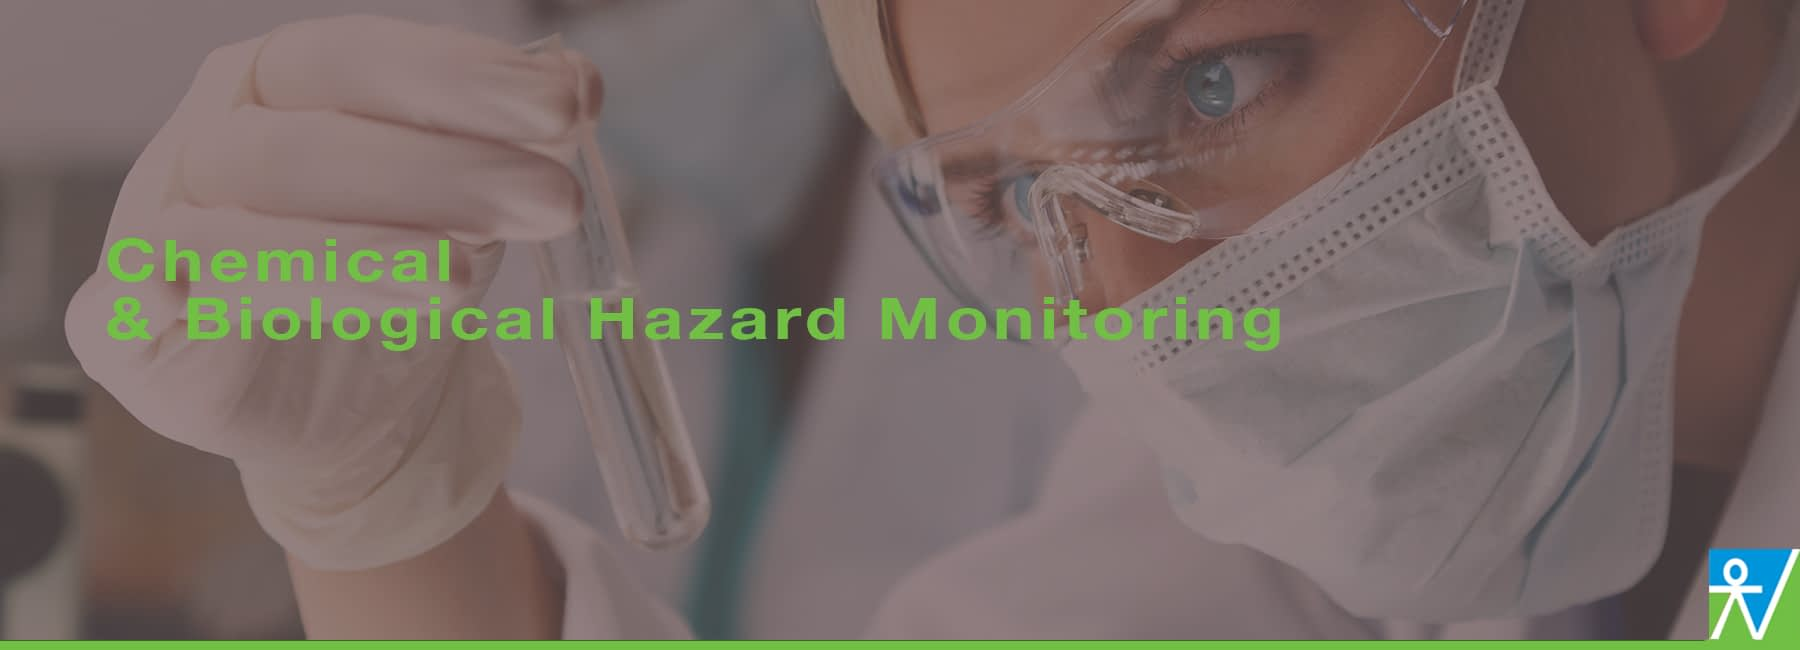 Workplace Chemical & Biological Hazard Monitoring   Auckland, New Zealand